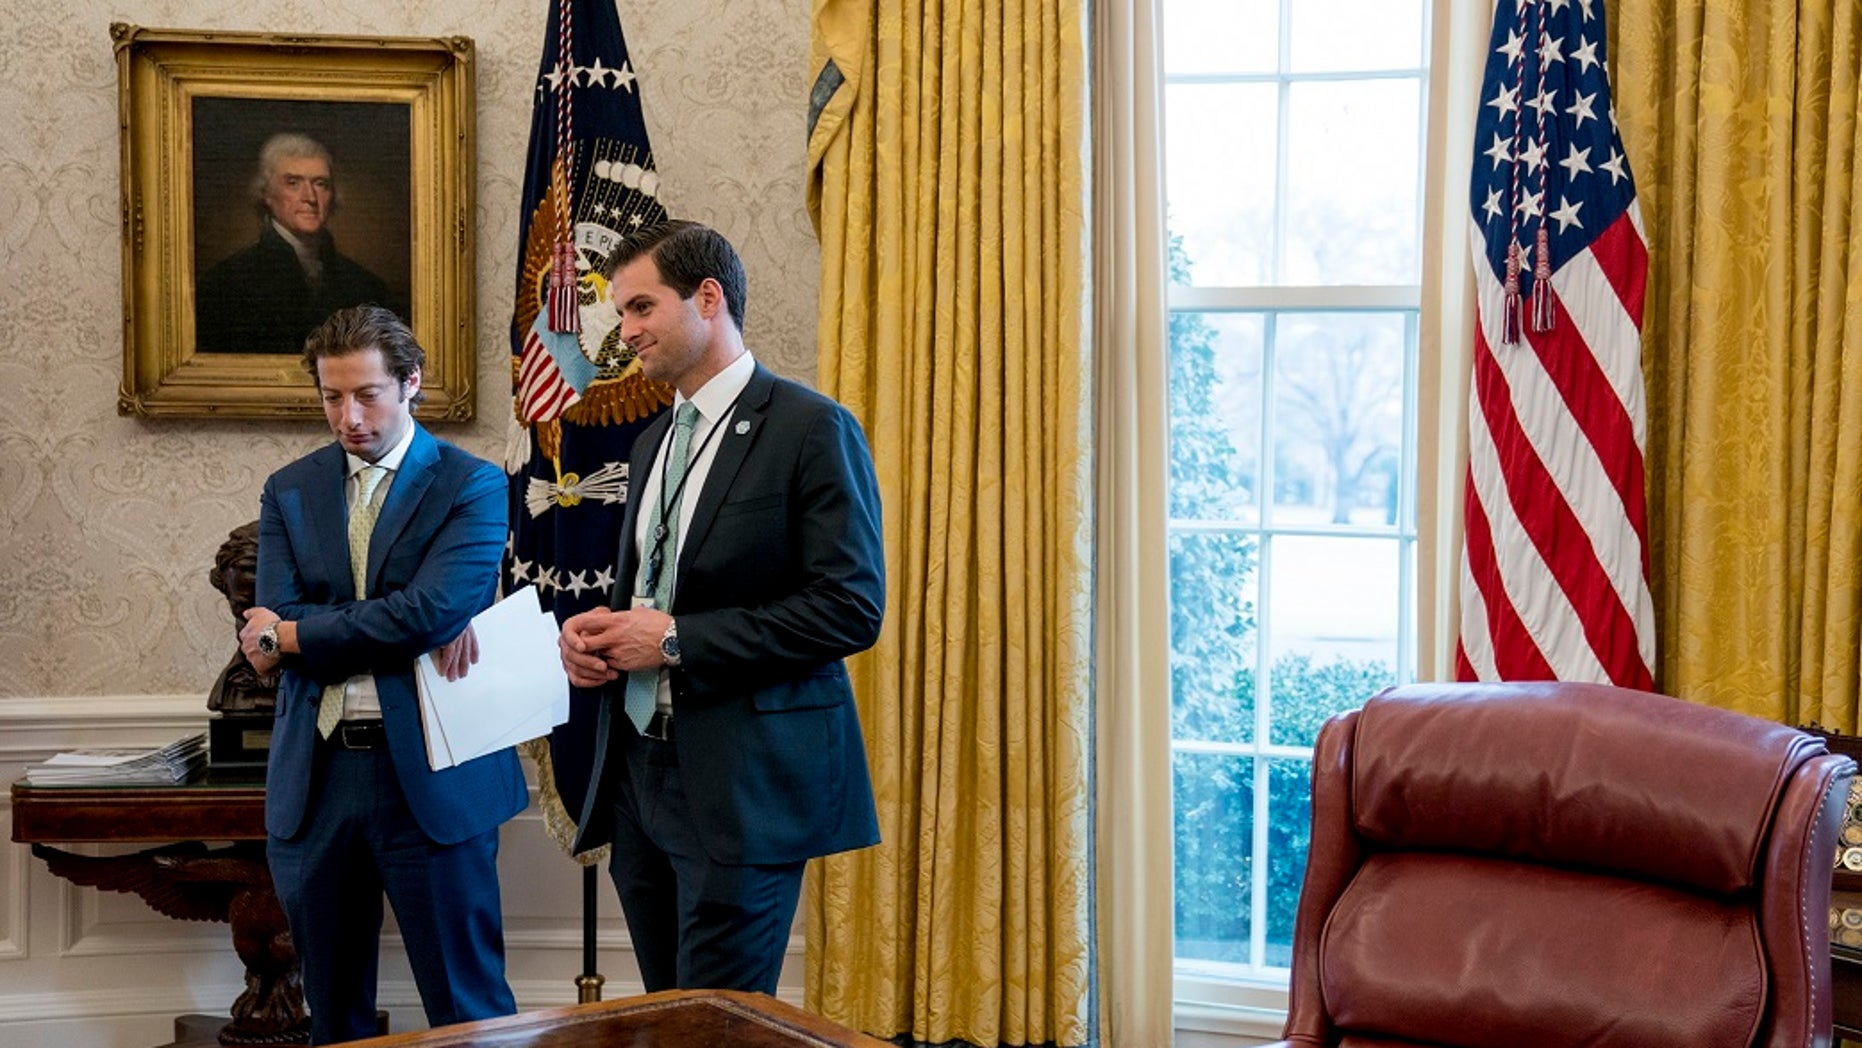 White House aide John McEntee, right, and Treasury Secretary Steve Mnuchin's Chief of Staff Eli Miller, left, stand in the Oval Office as President Donald Trump speaks at a tax reform meeting with American workers at the White House in Washington. Trump's personal aide is leaving the White House and will rejoin his campaign.